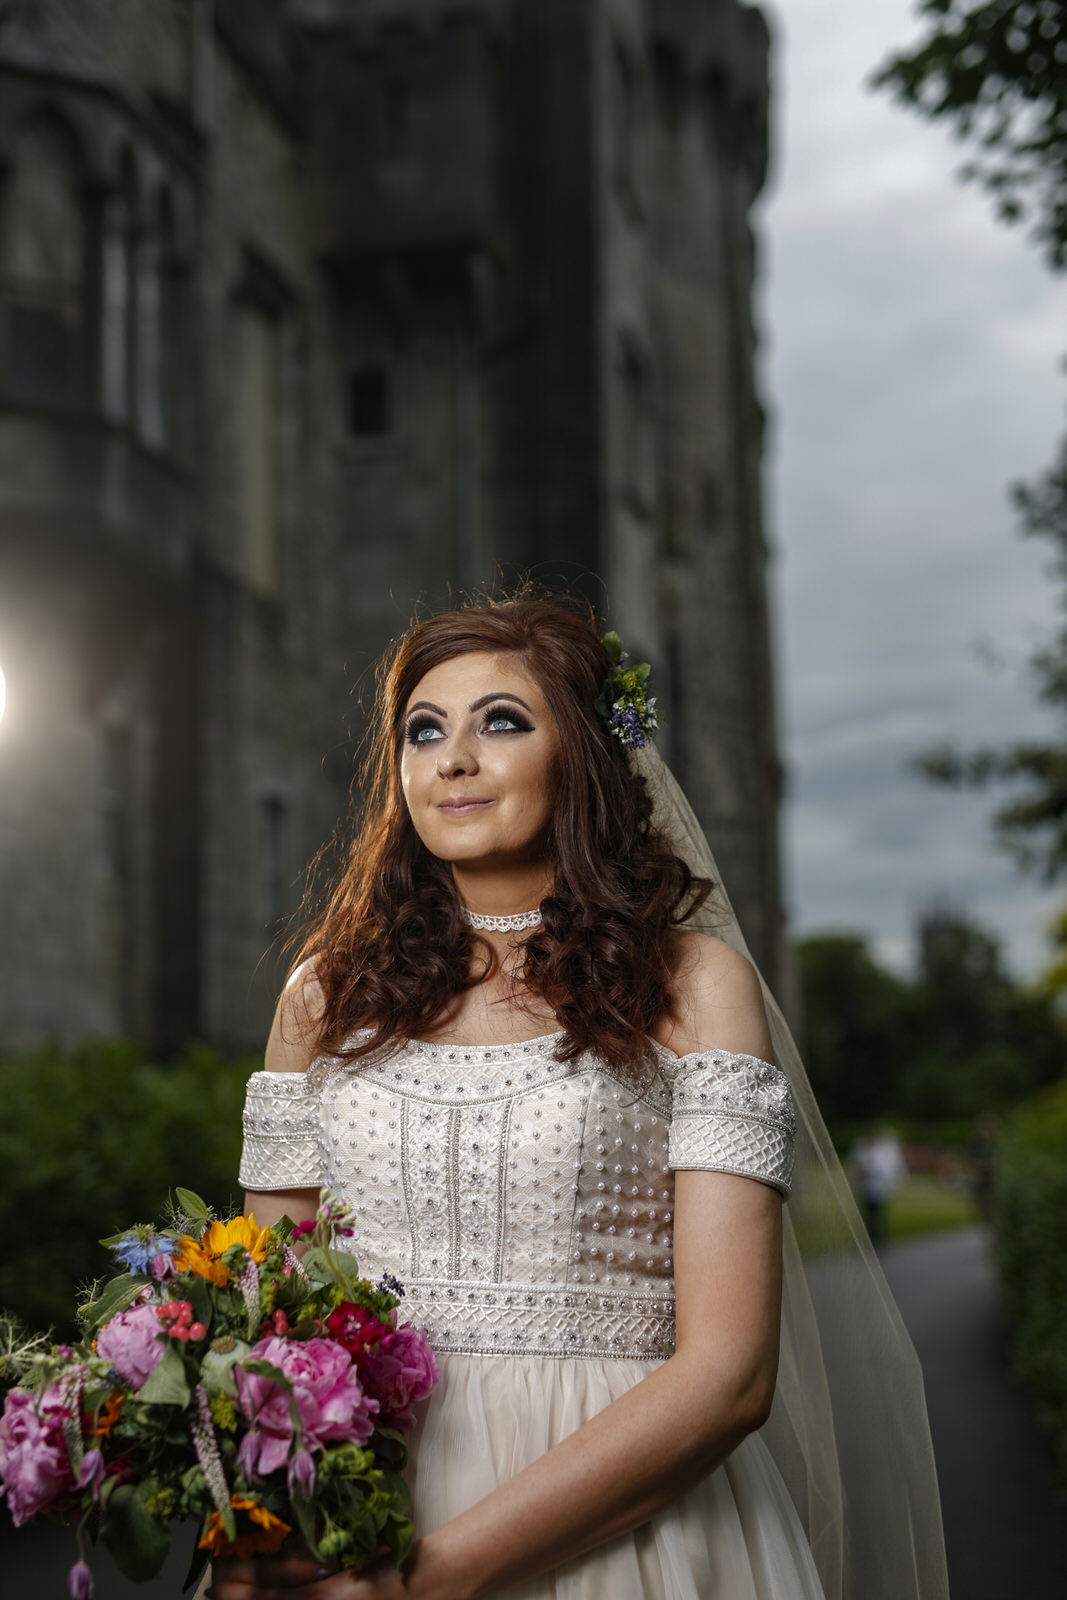 waterford_faithlegg_wedding_photographer_goldenmonentsweddingphotography_a506.jpg